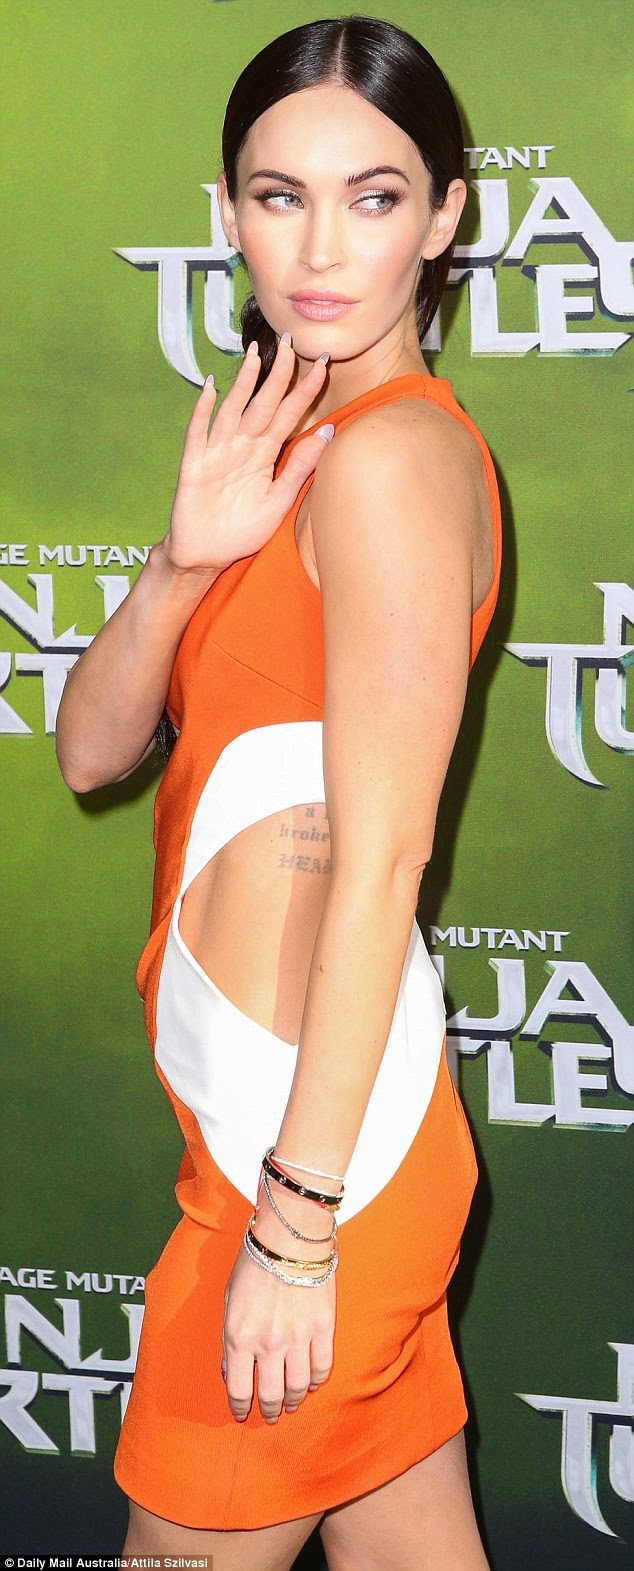 Megan Fox shows off tattoos in an orange cutout dress at the 'Teenage Mutant Ninja Turtles' Sydney premiere